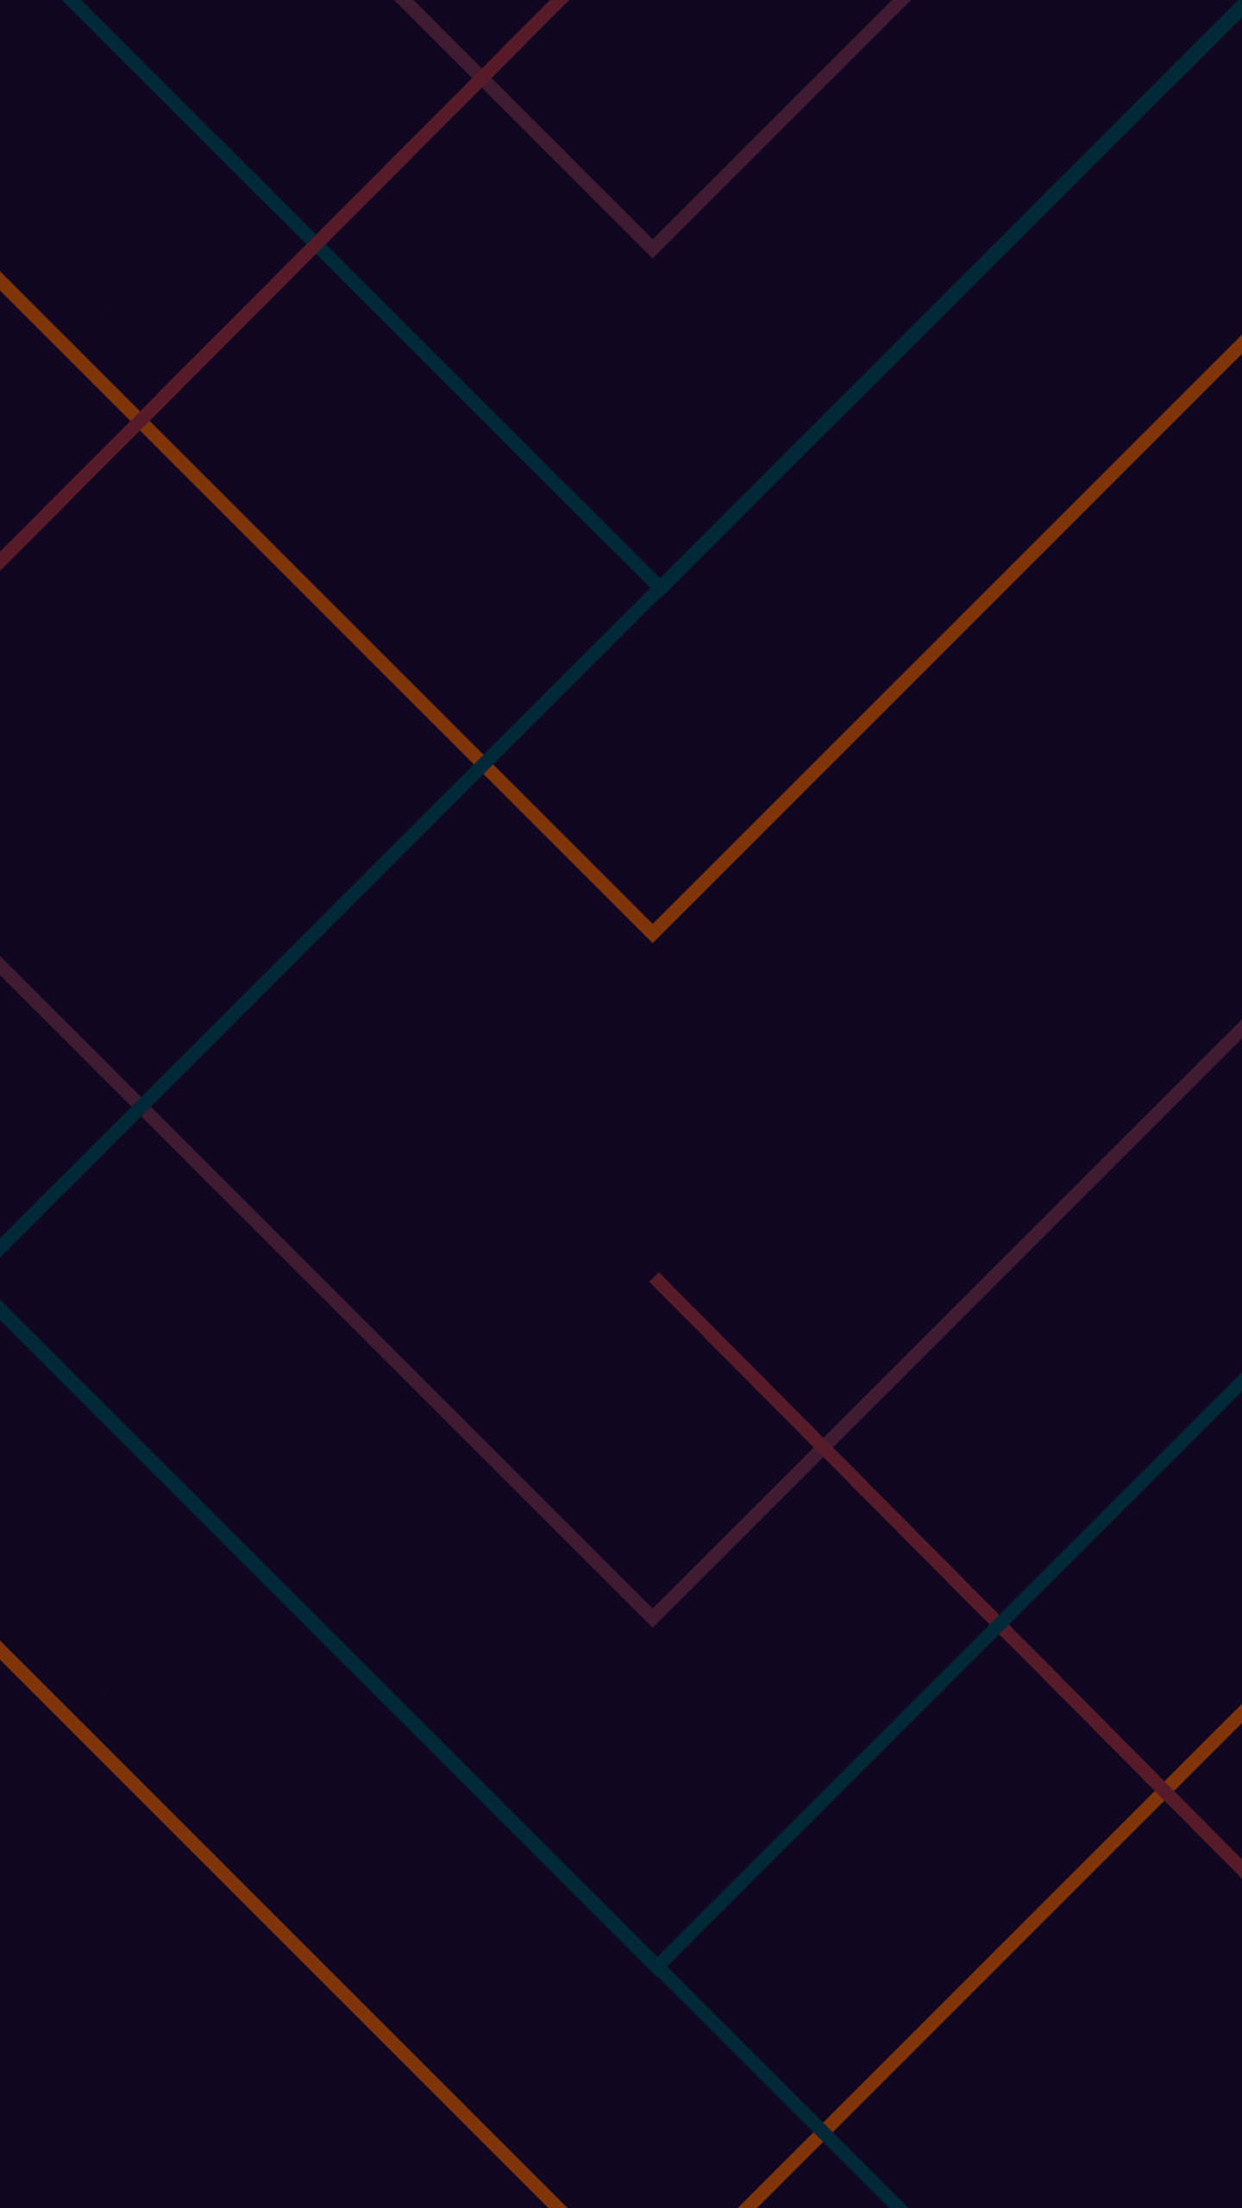 geometric iphone wallpaper (77+ images)